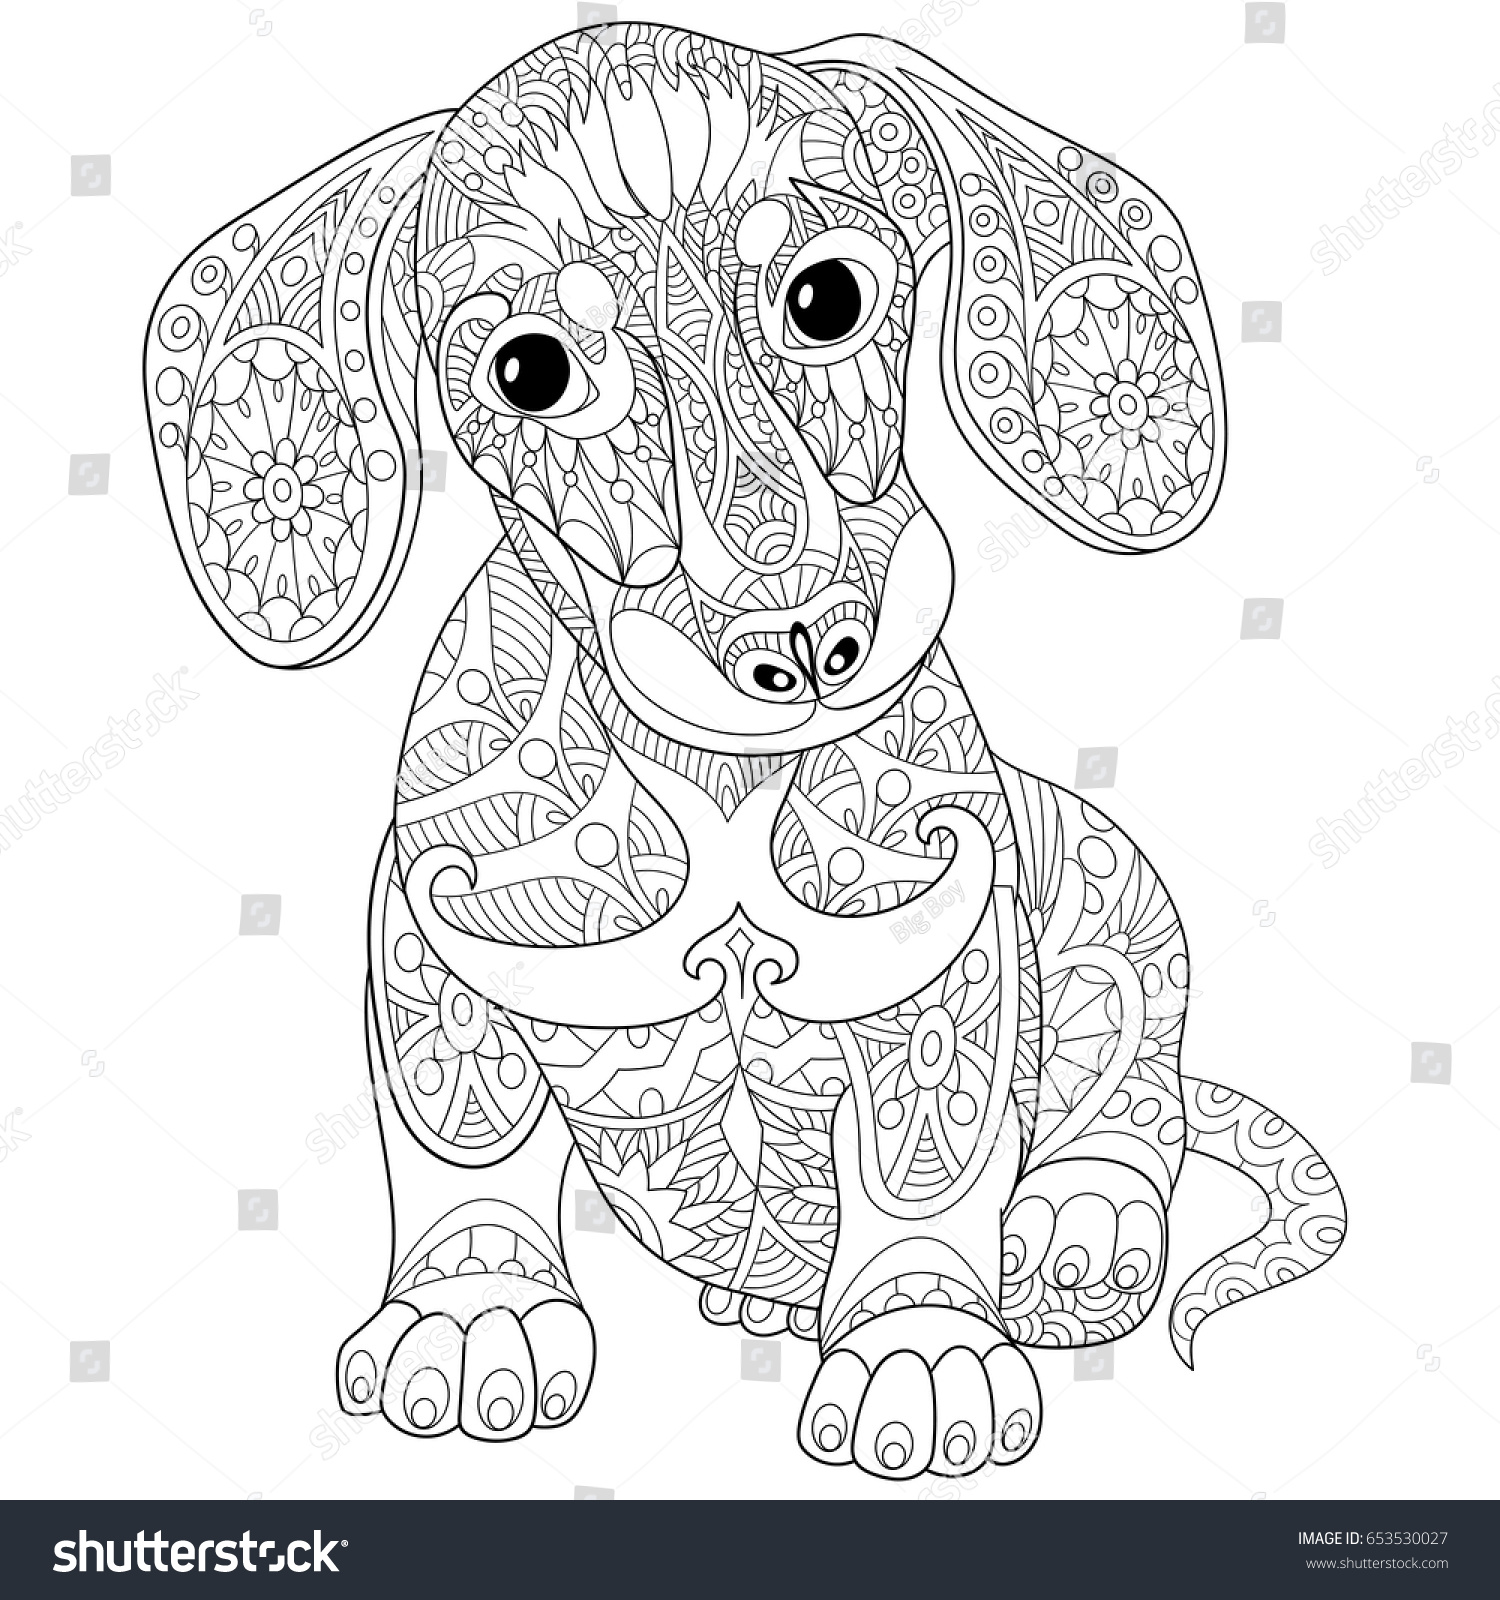 coloring page dachshund puppy dog symbol stock vector 653530027